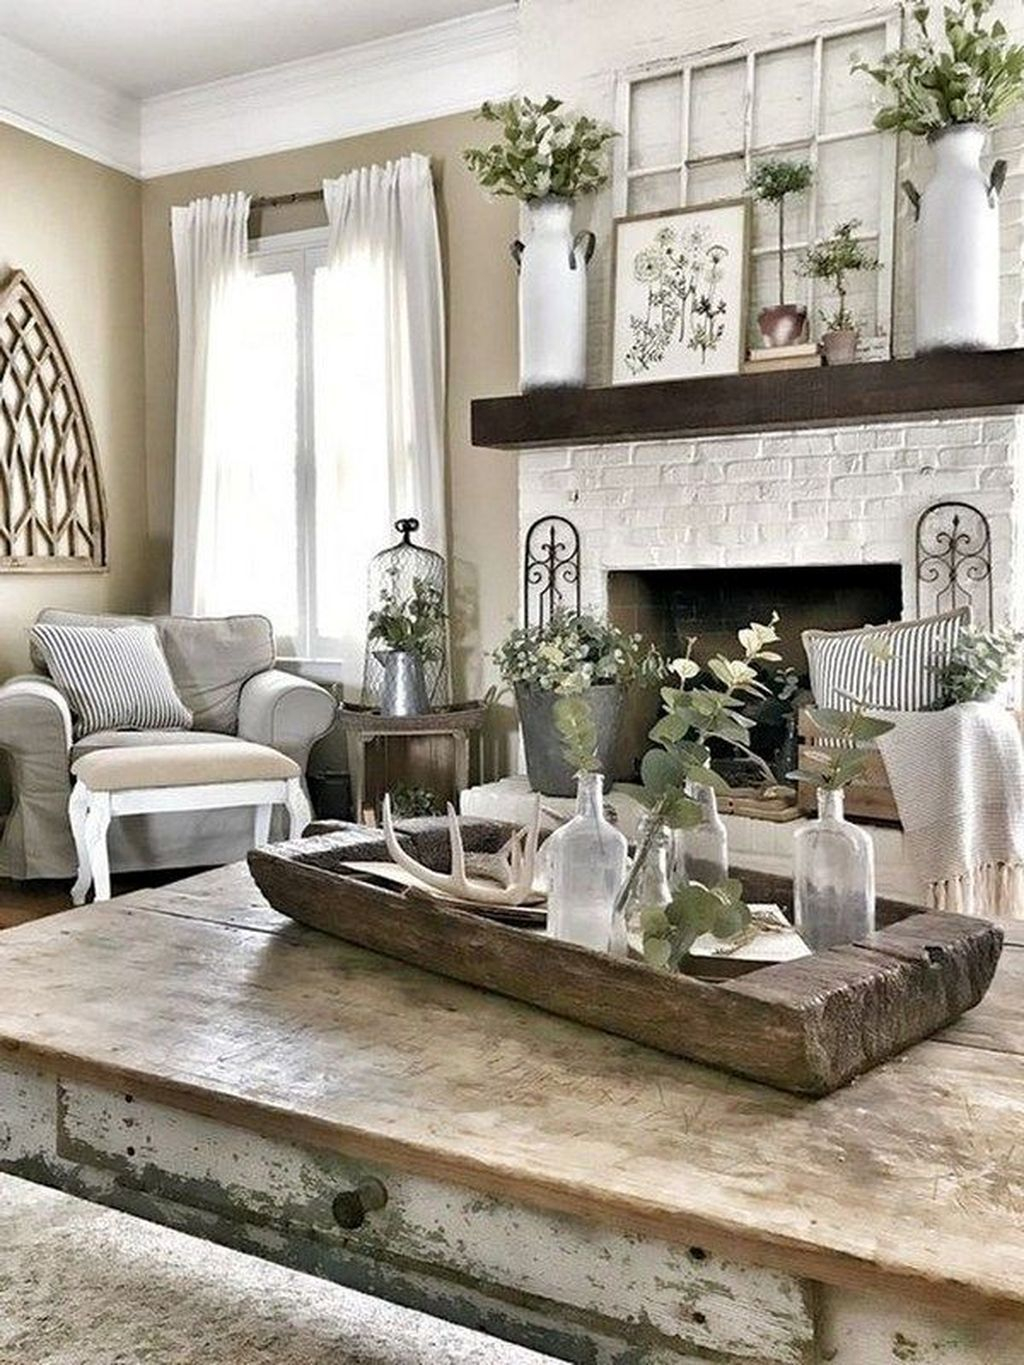 33 Wonderful Modern Farmhouse Style Living Room Decor Ideas Farmhouse Style Living Room Decor Rustic Farmhouse Living Room Farmhouse Decor Living Room